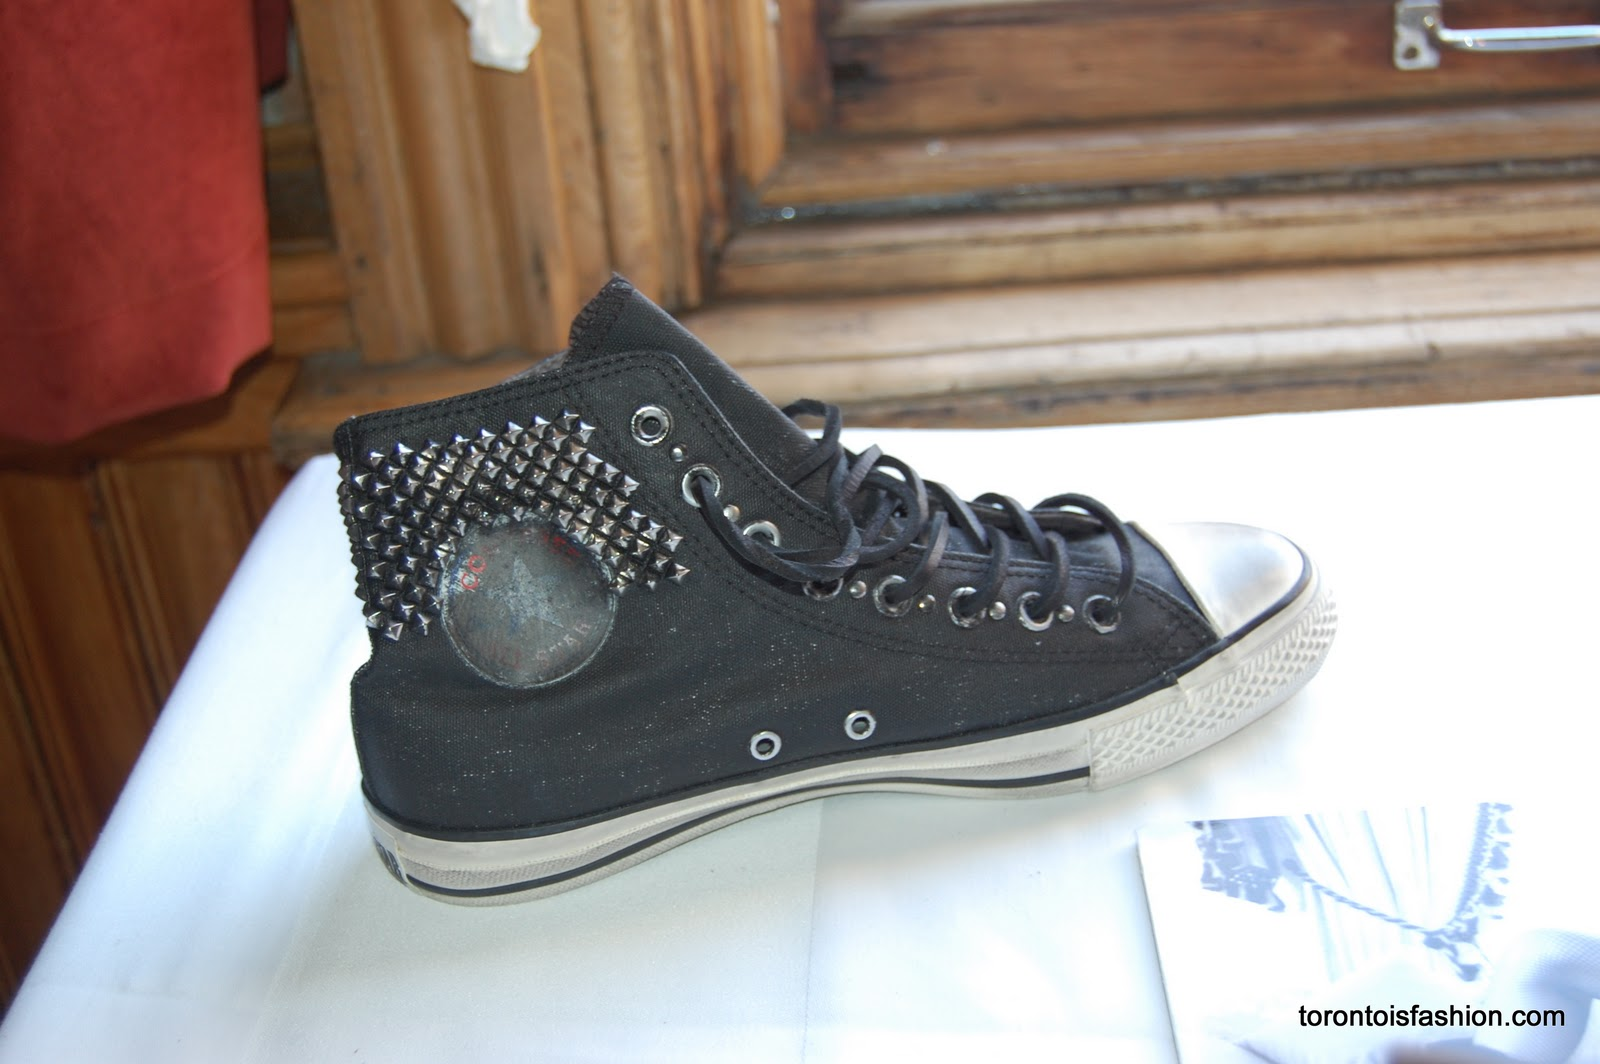 48cf0379444d Next up was the collaboration between Finnish design company Merimekko and  Converse